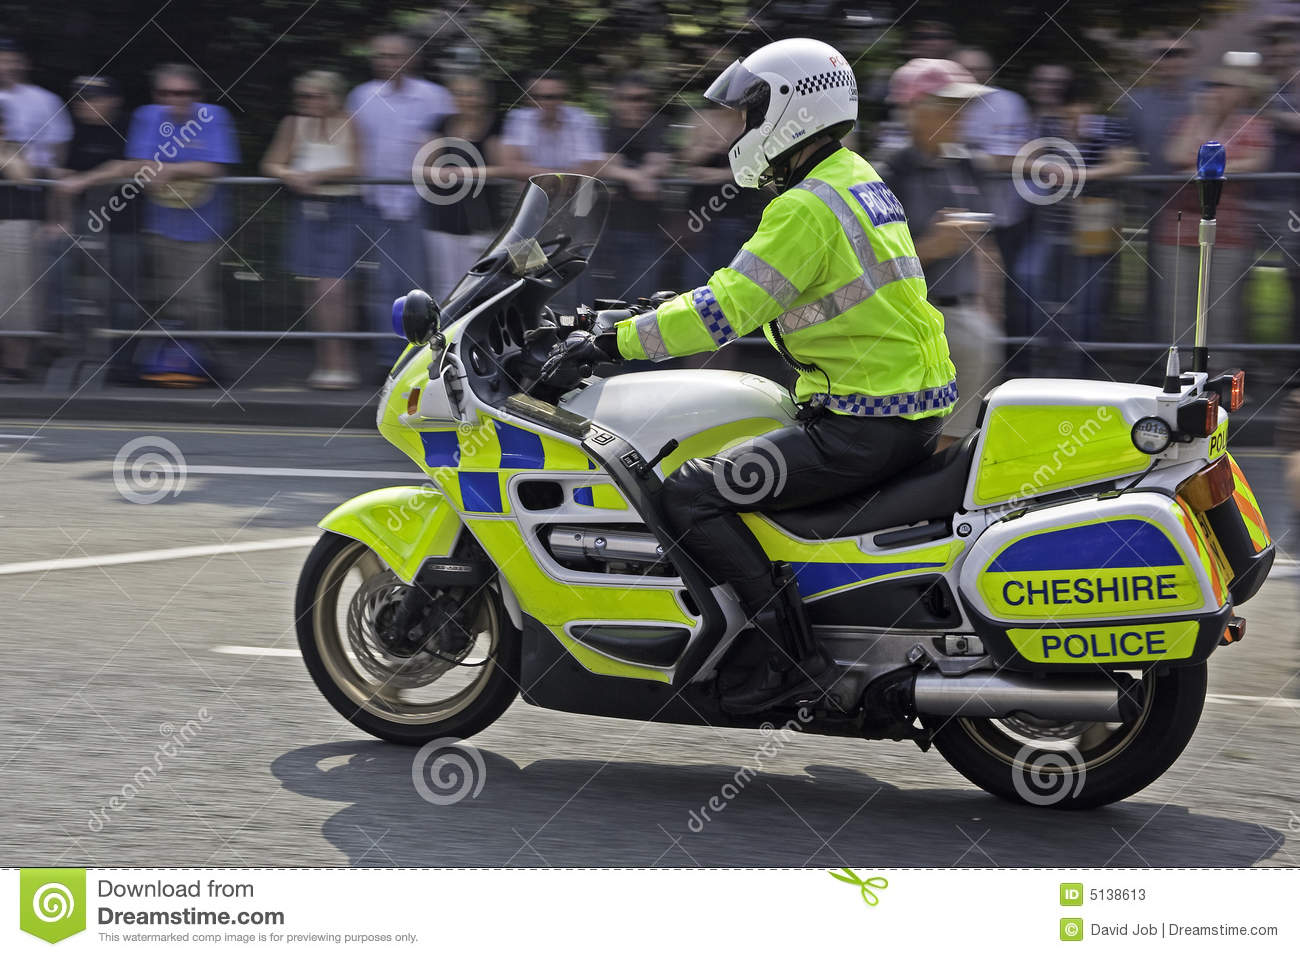 Free Job Alert Police Motorcycle Stock Image. Image Of Criminal, Middle